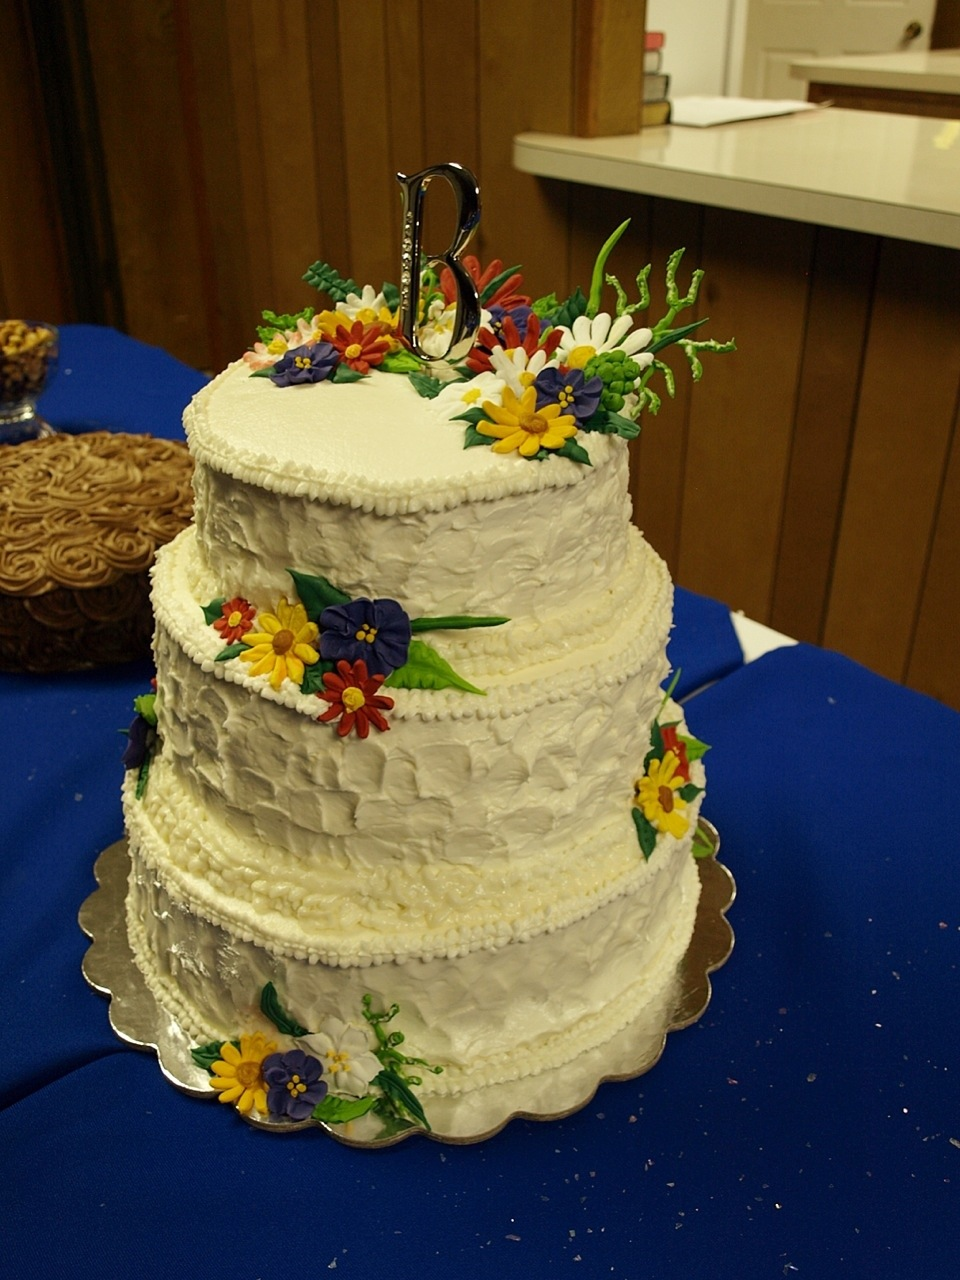 Wildflower Wedding Cake | My Crazy Blessed Life!